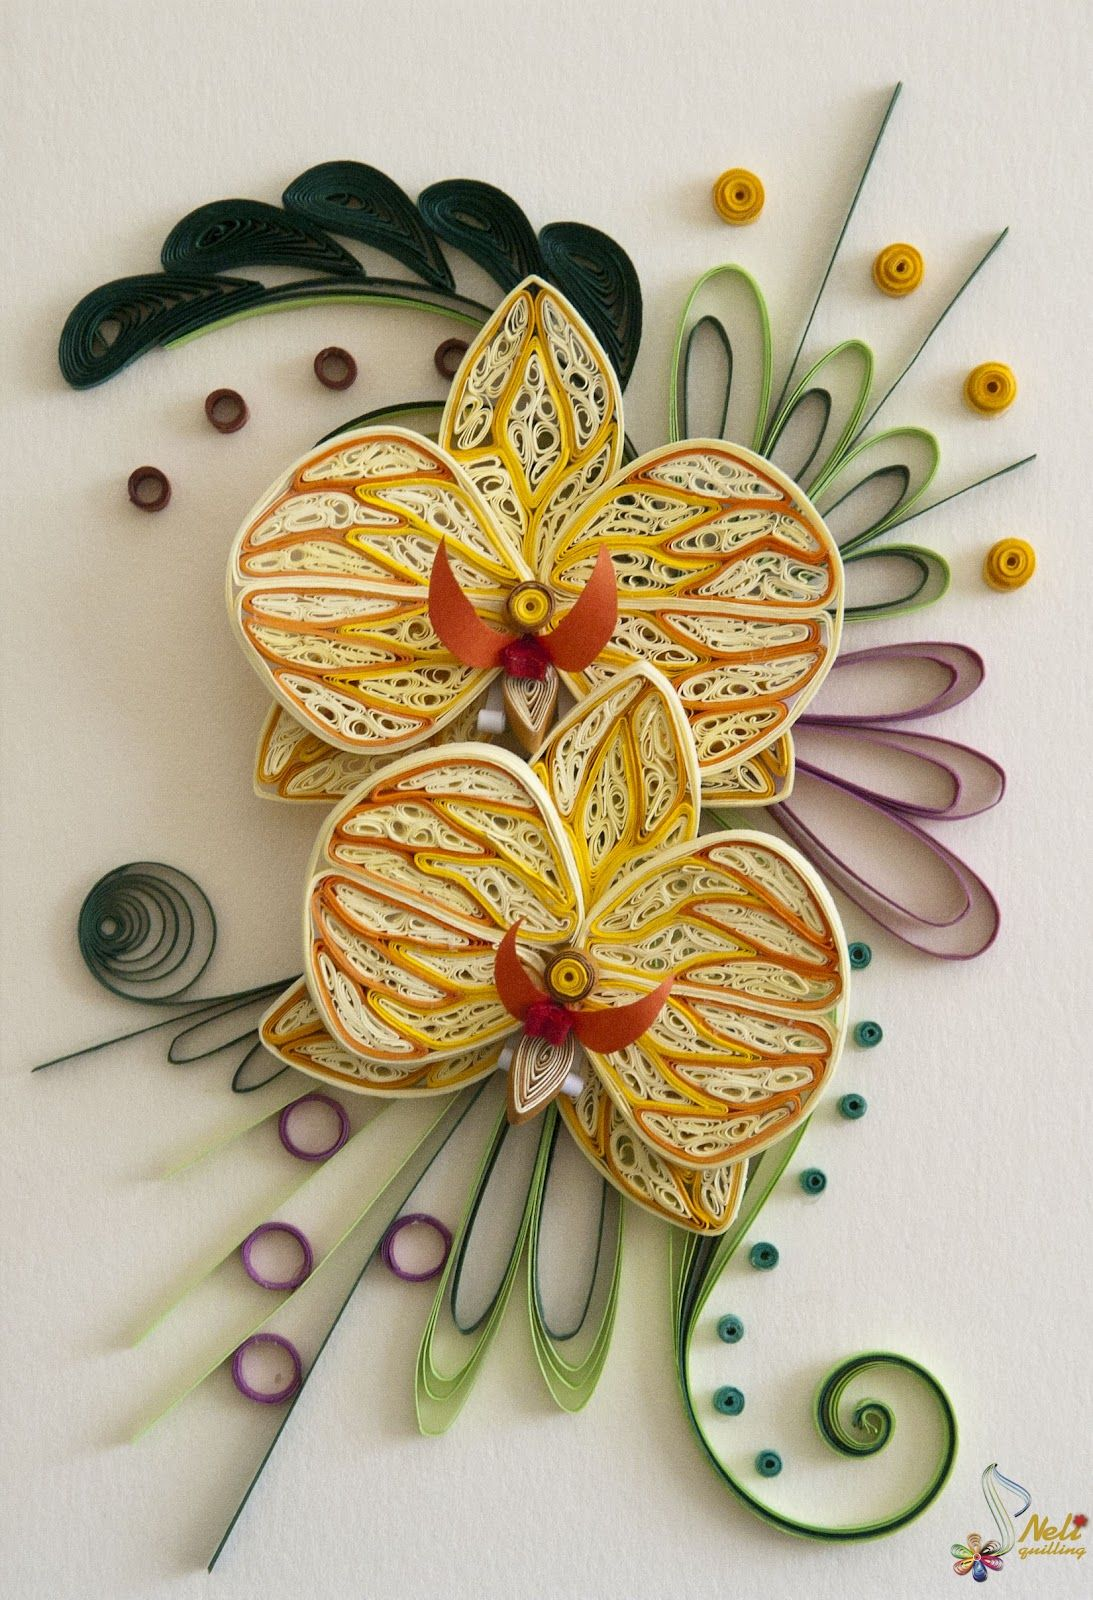 quilled orchids | Quilling cards - orchids | challenge quilling ...